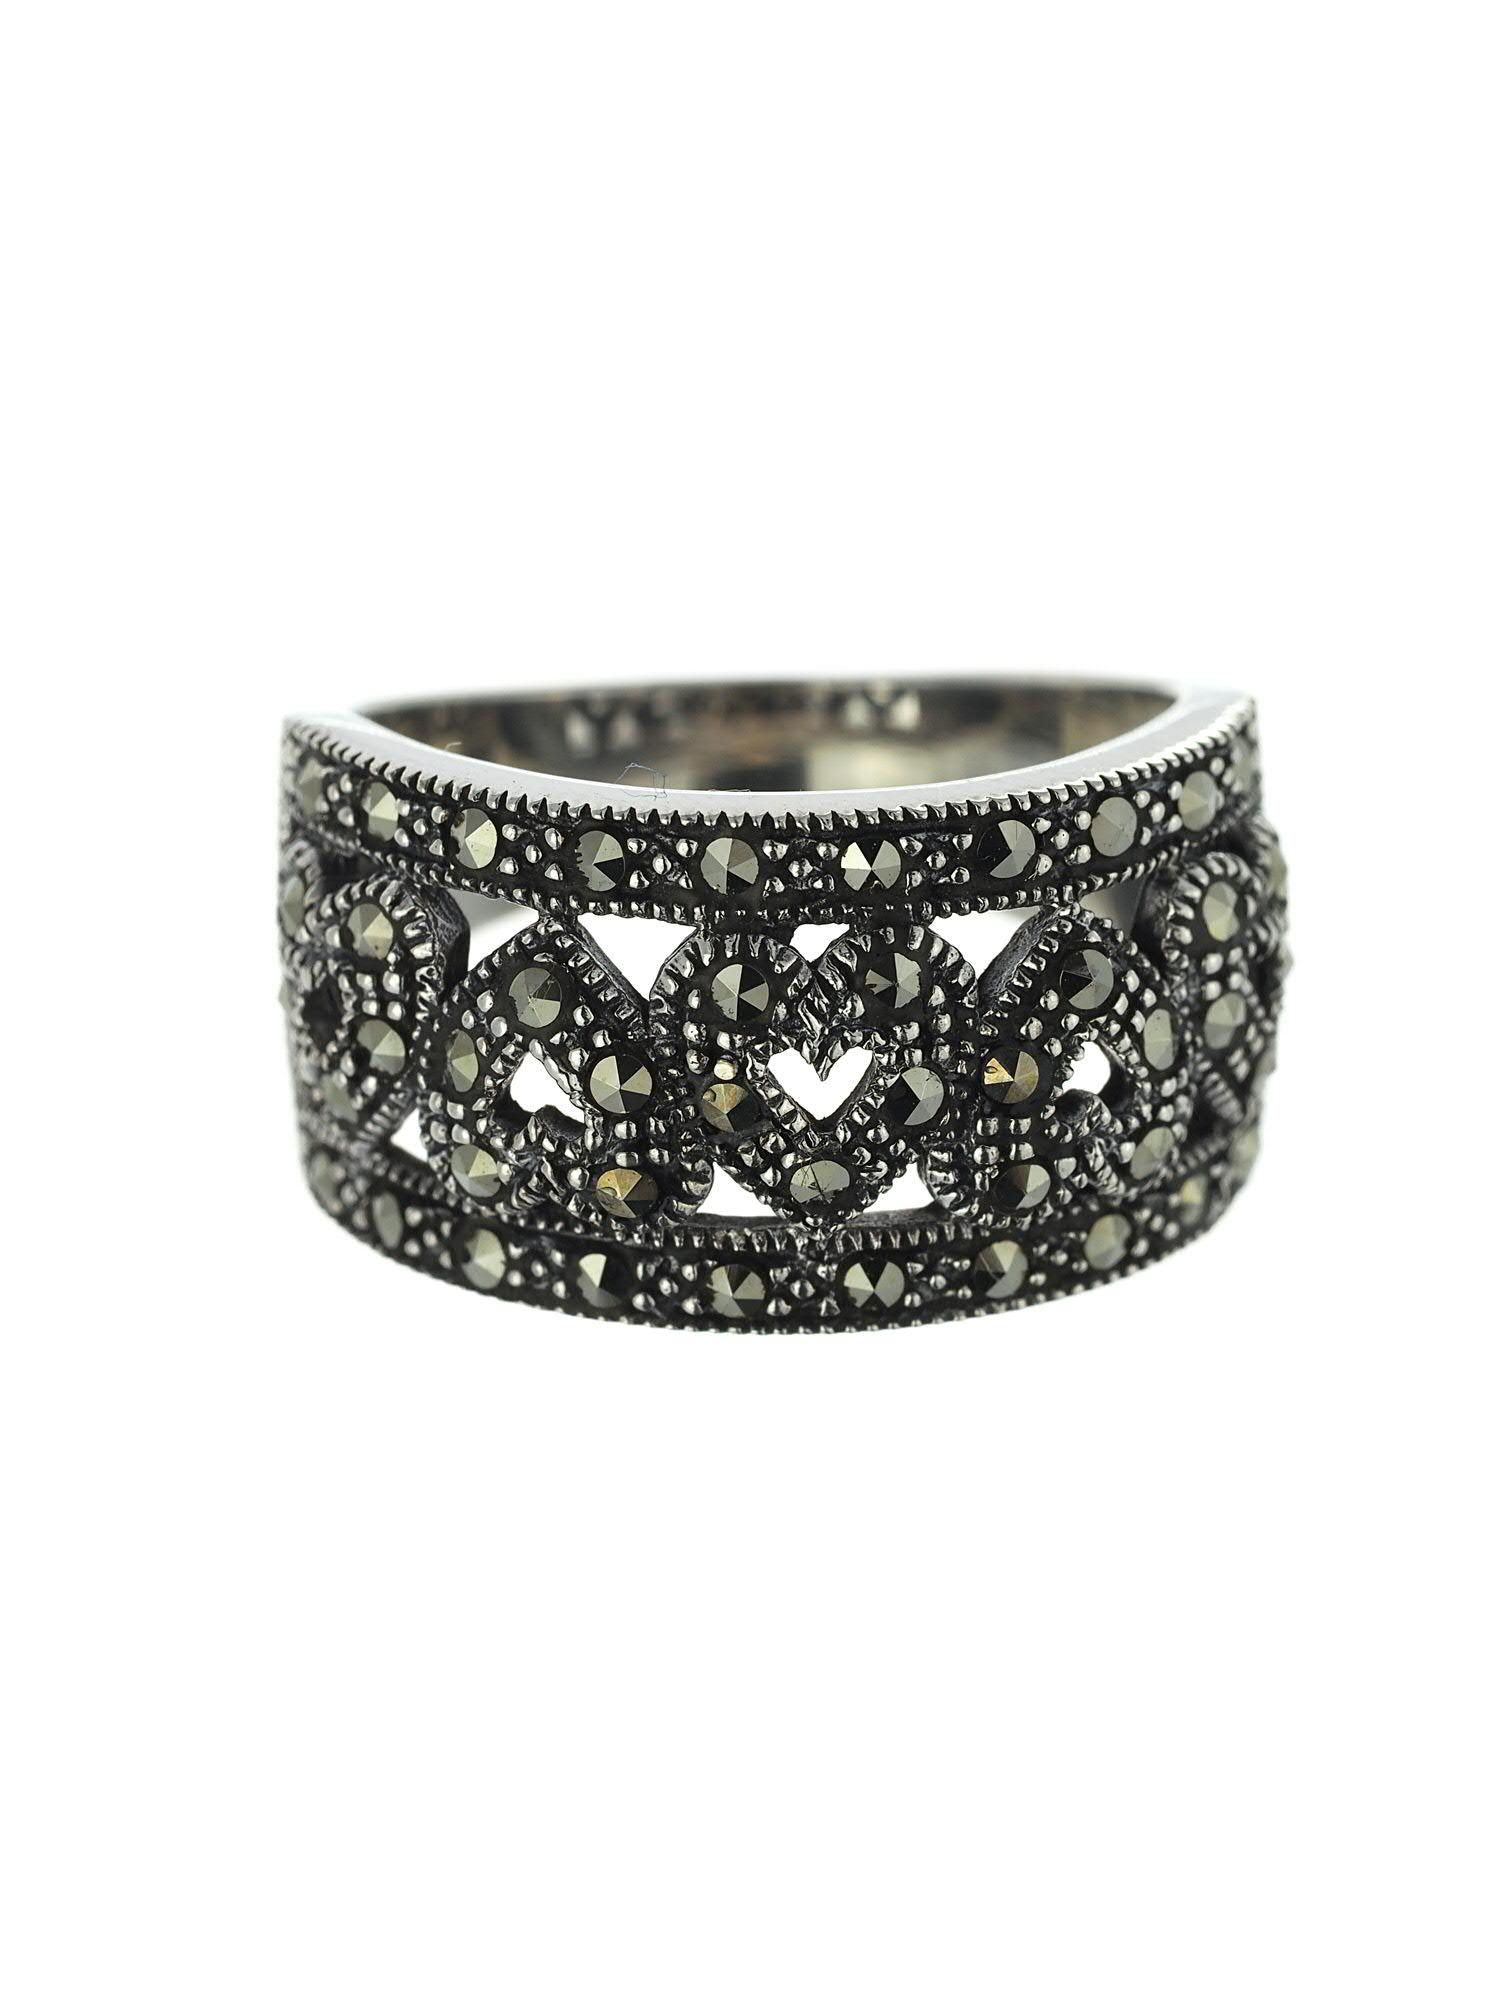 Sterling Silver And Marcasite Band Of Hearts Ring Throughout Best And Newest Band Of Hearts Rings (View 23 of 25)